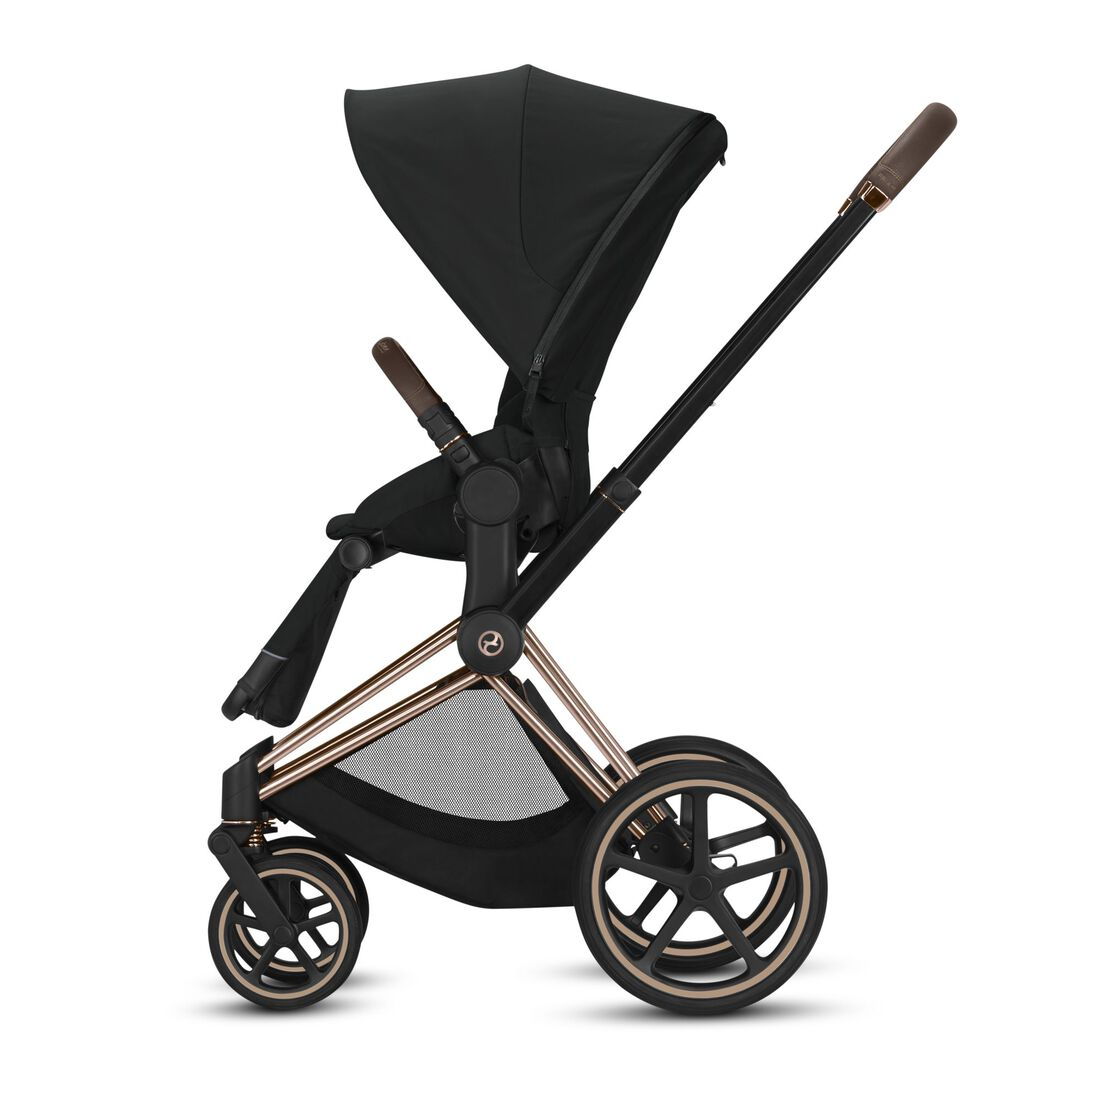 CYBEX Balios S 2-in-1 Pushchair - Never-flat all terrain wheels